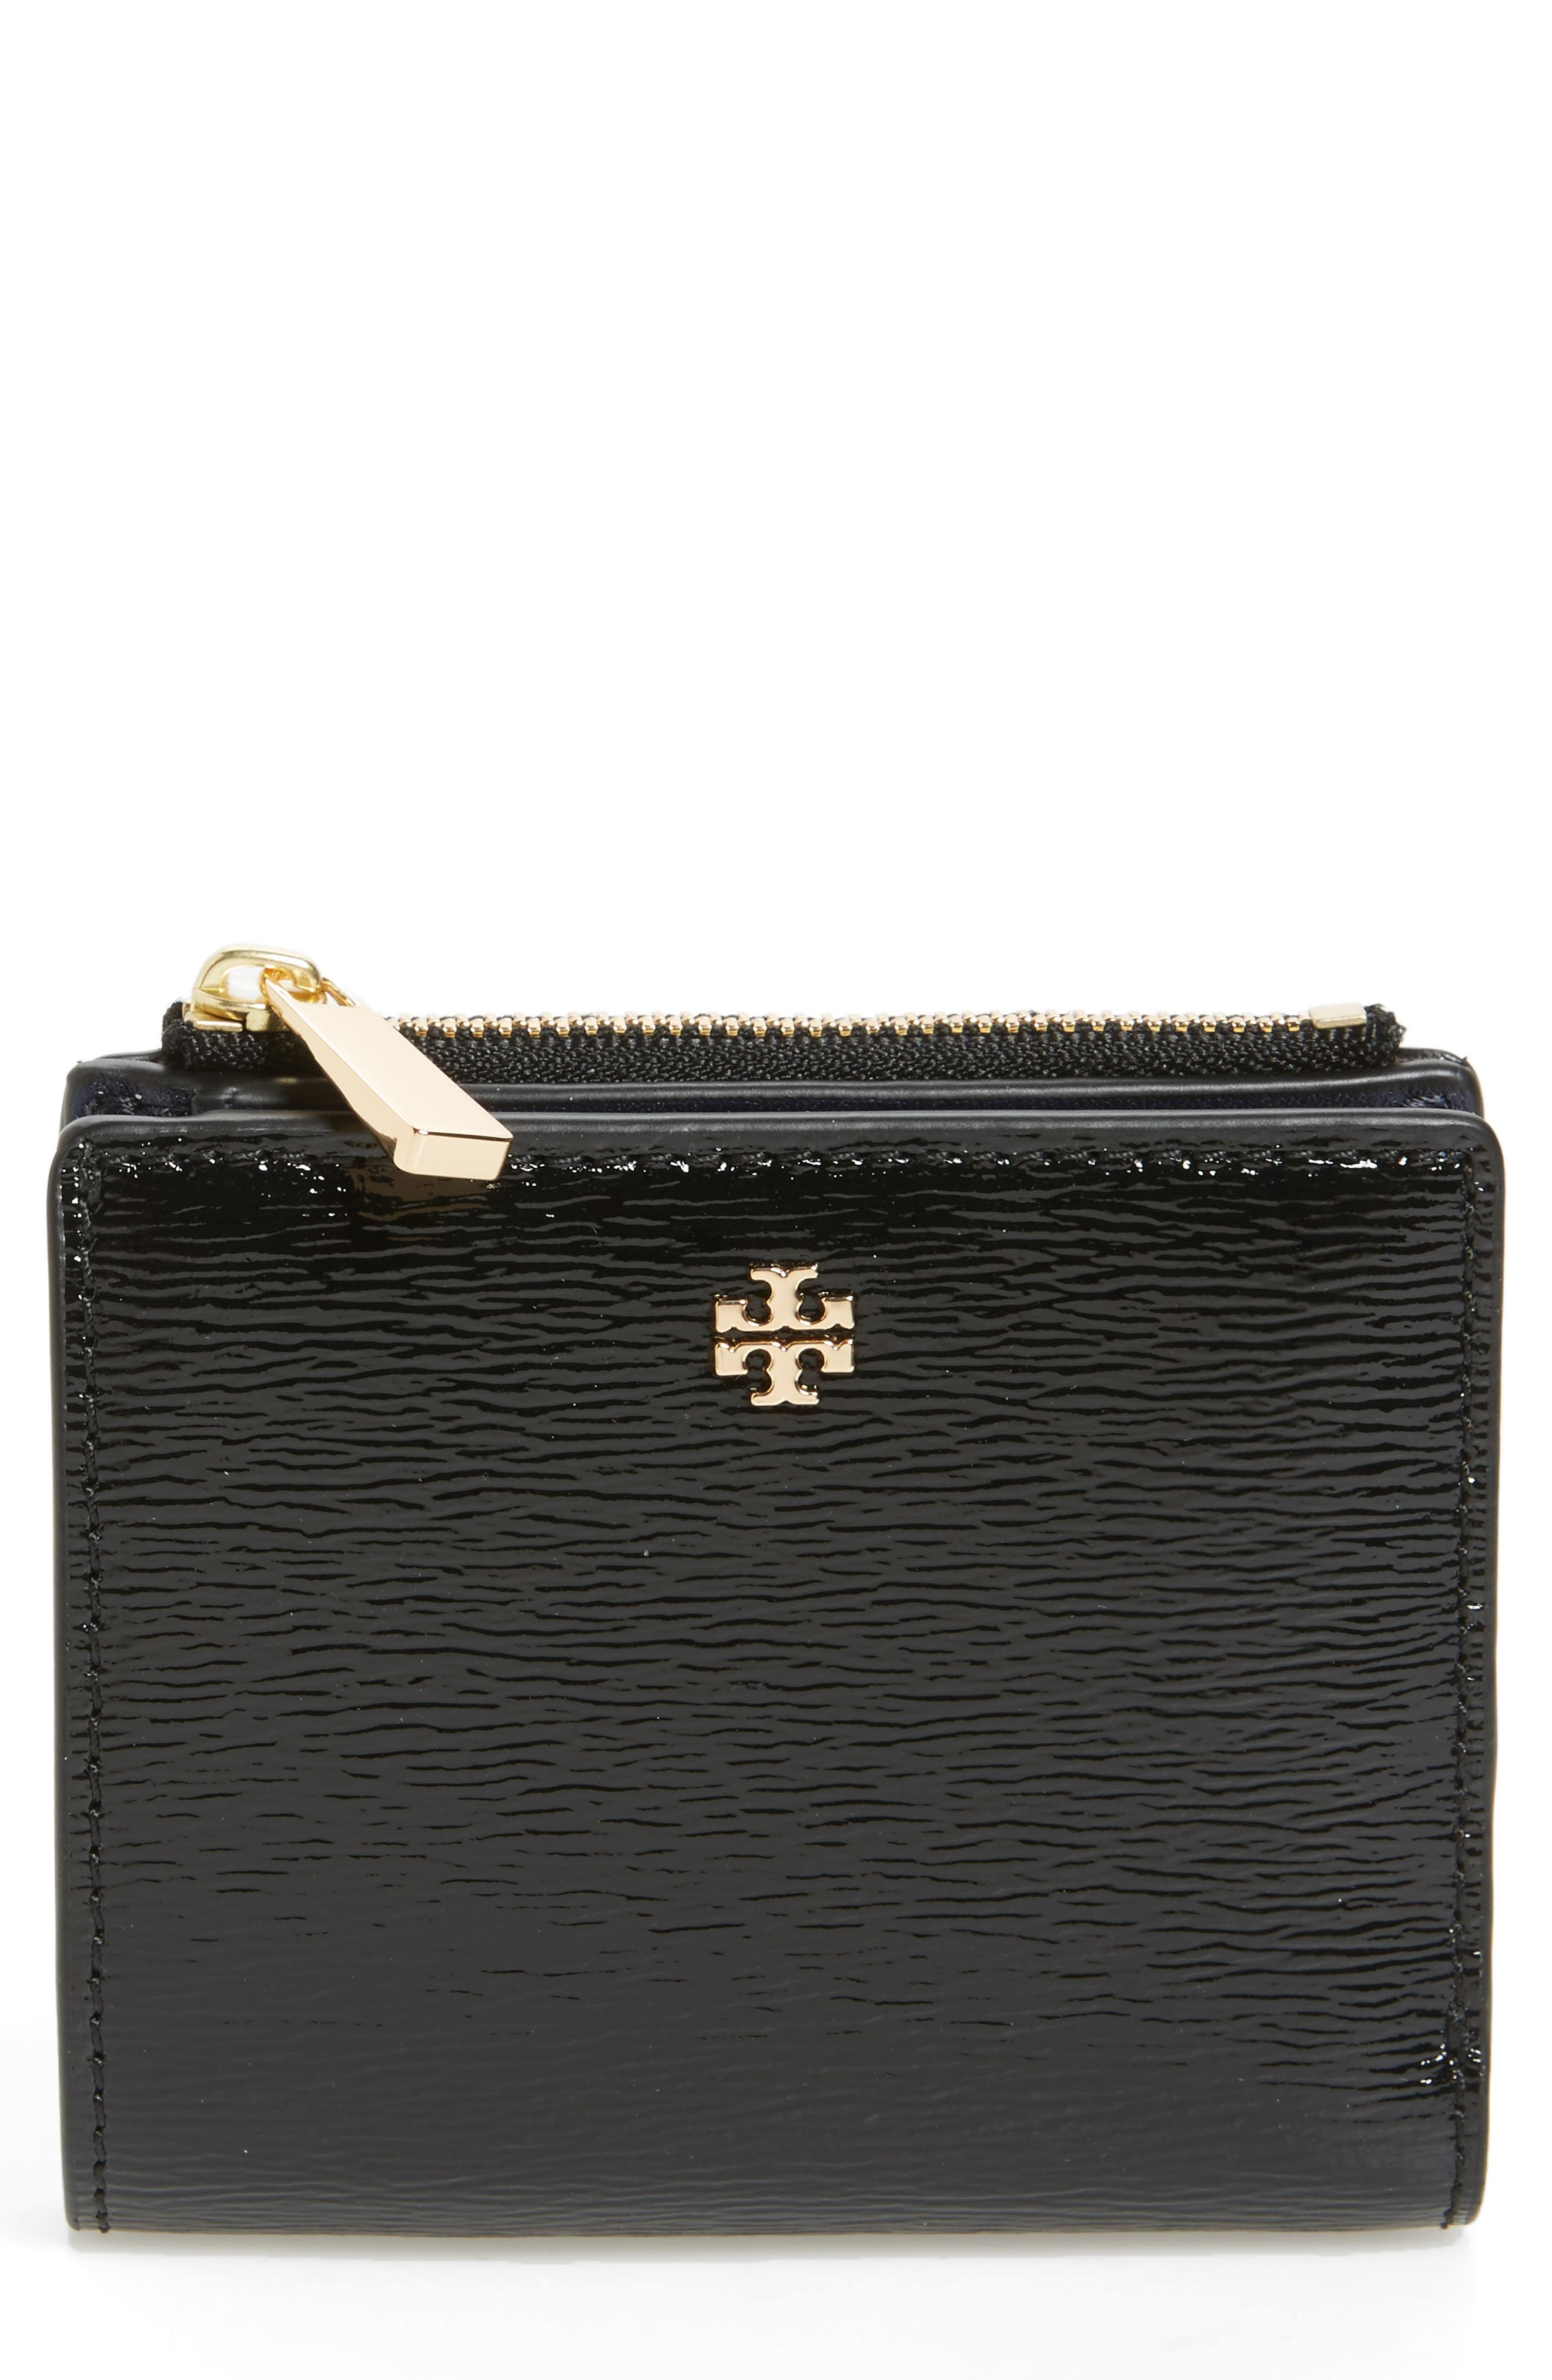 Main Image - Tory Burch Mini Robinson Wallet Patent Leather Bifold Wallet